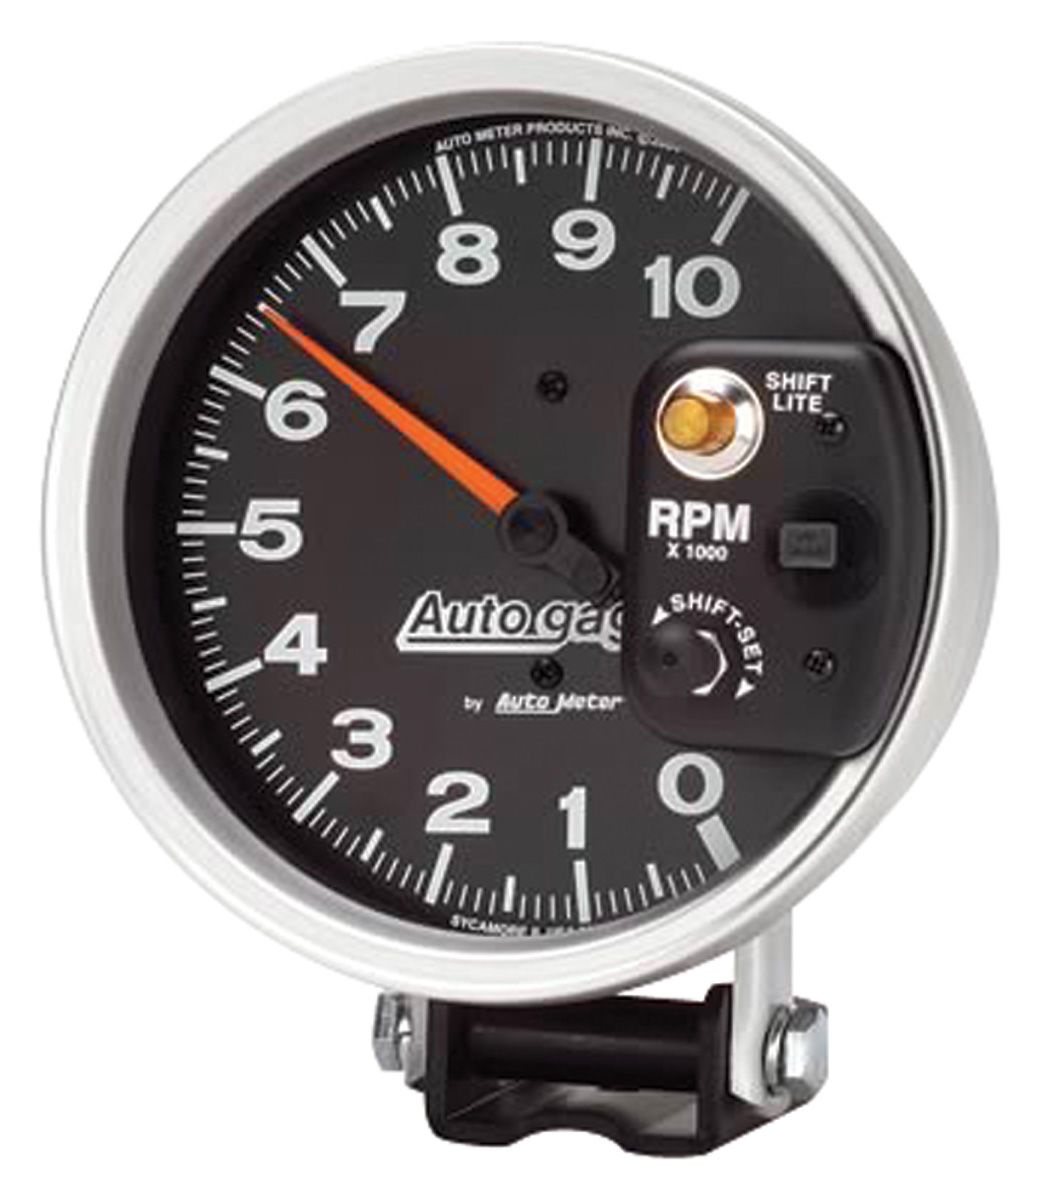 "Photo of Tachometer, Autogage 5"" Monster Shift-Lite shift light on shield (10,000 rpm)"